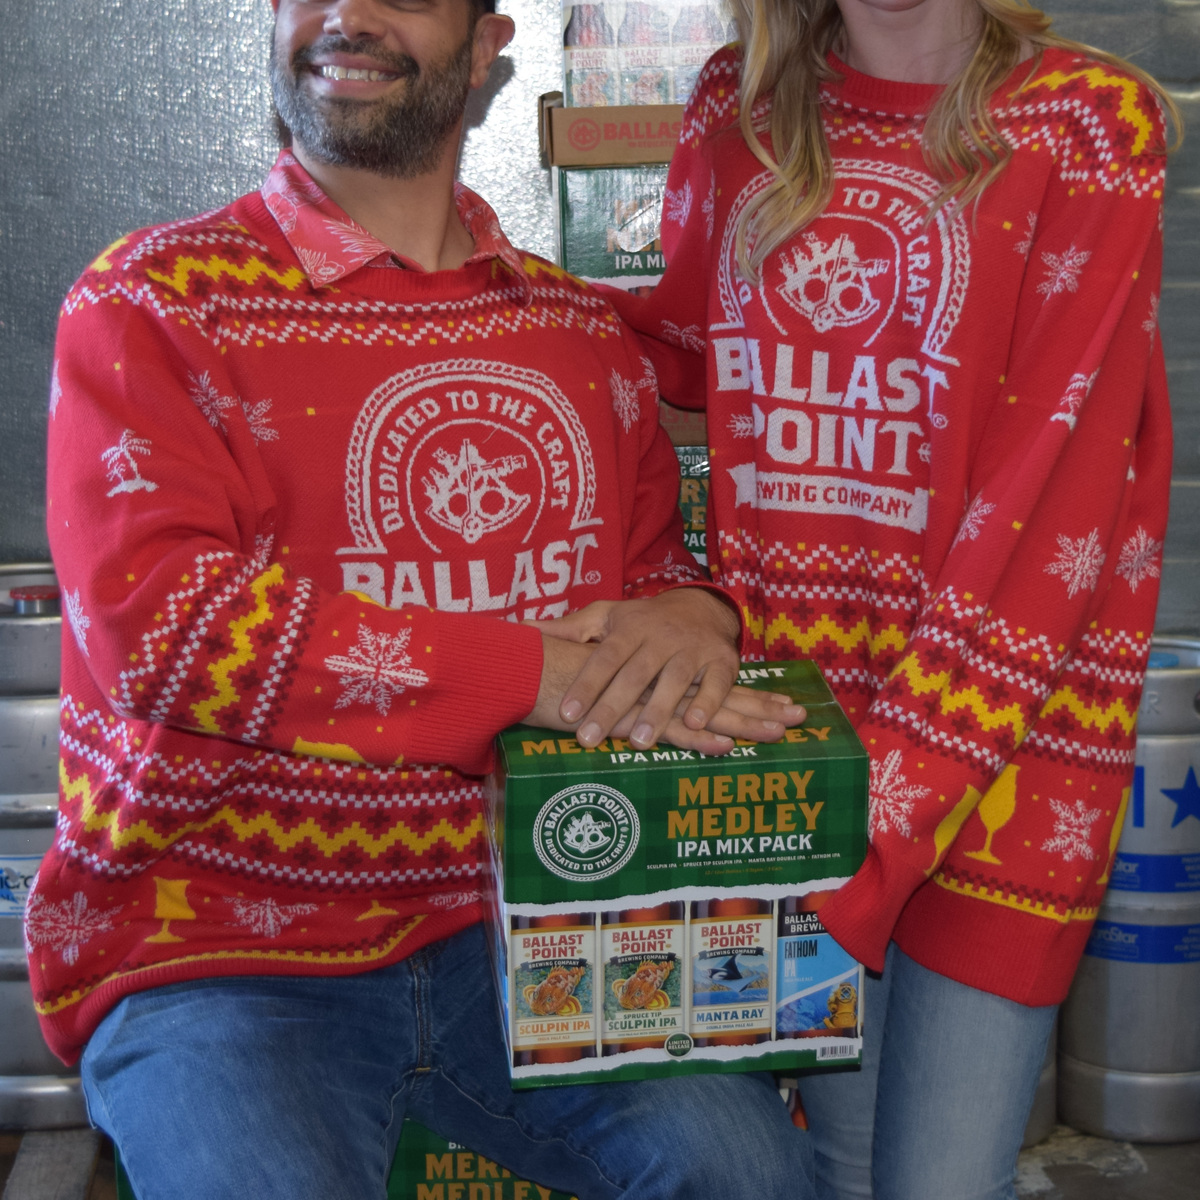 Ballast Point Ugly Sweater THUMBNAIL